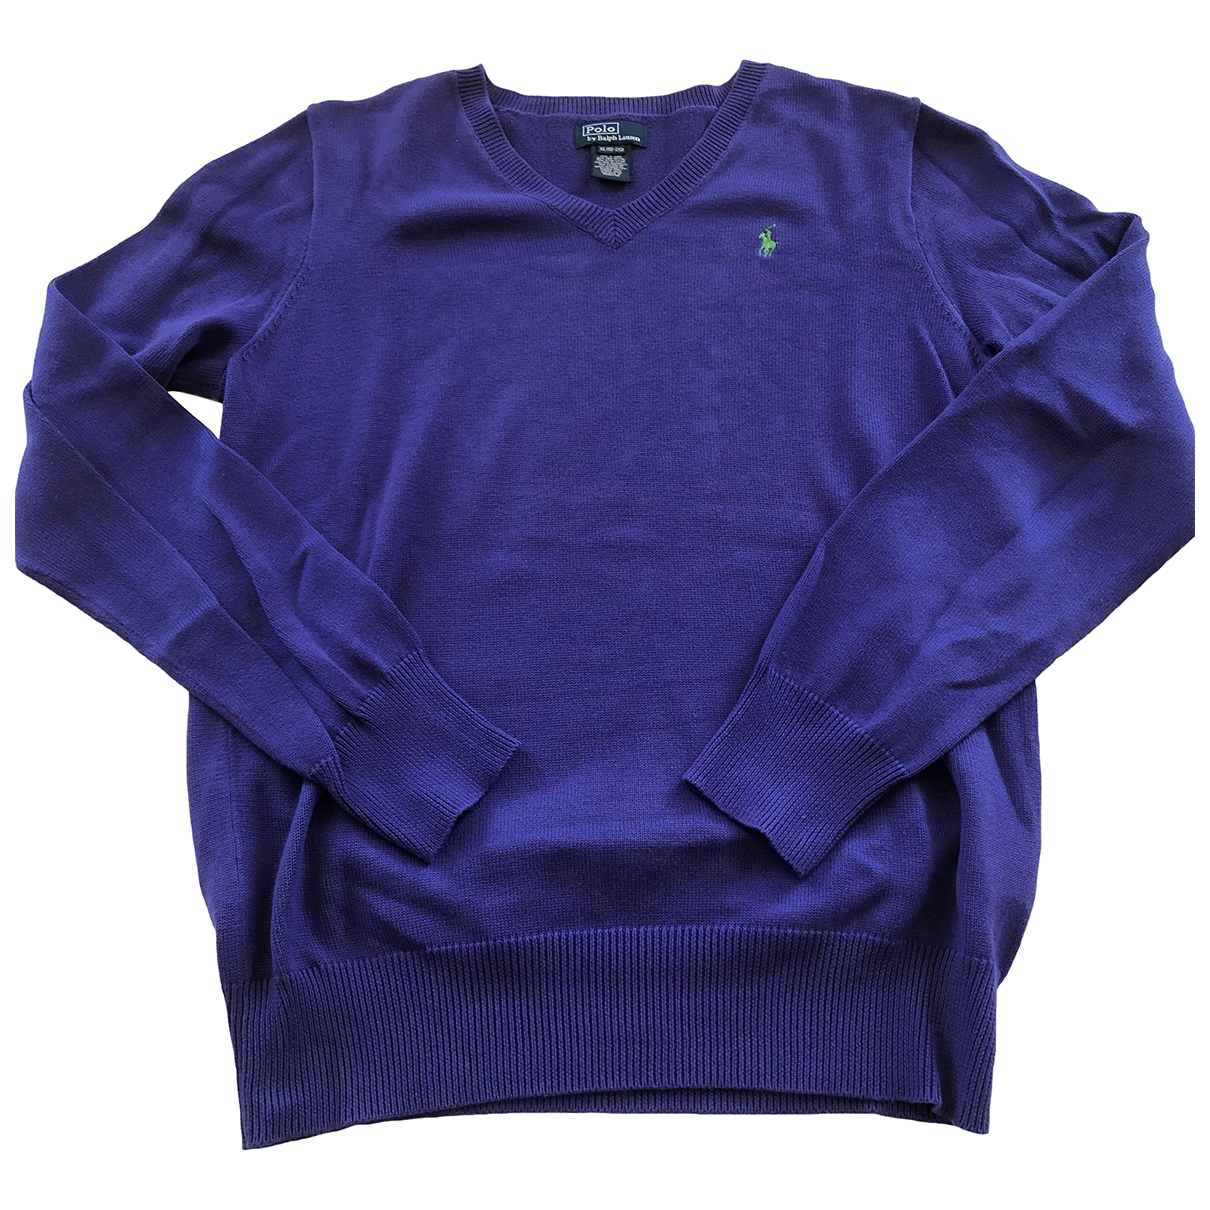 Polo Ralph Lauren \N Purple Cotton Knitwear for Kids 20 years - XL UK